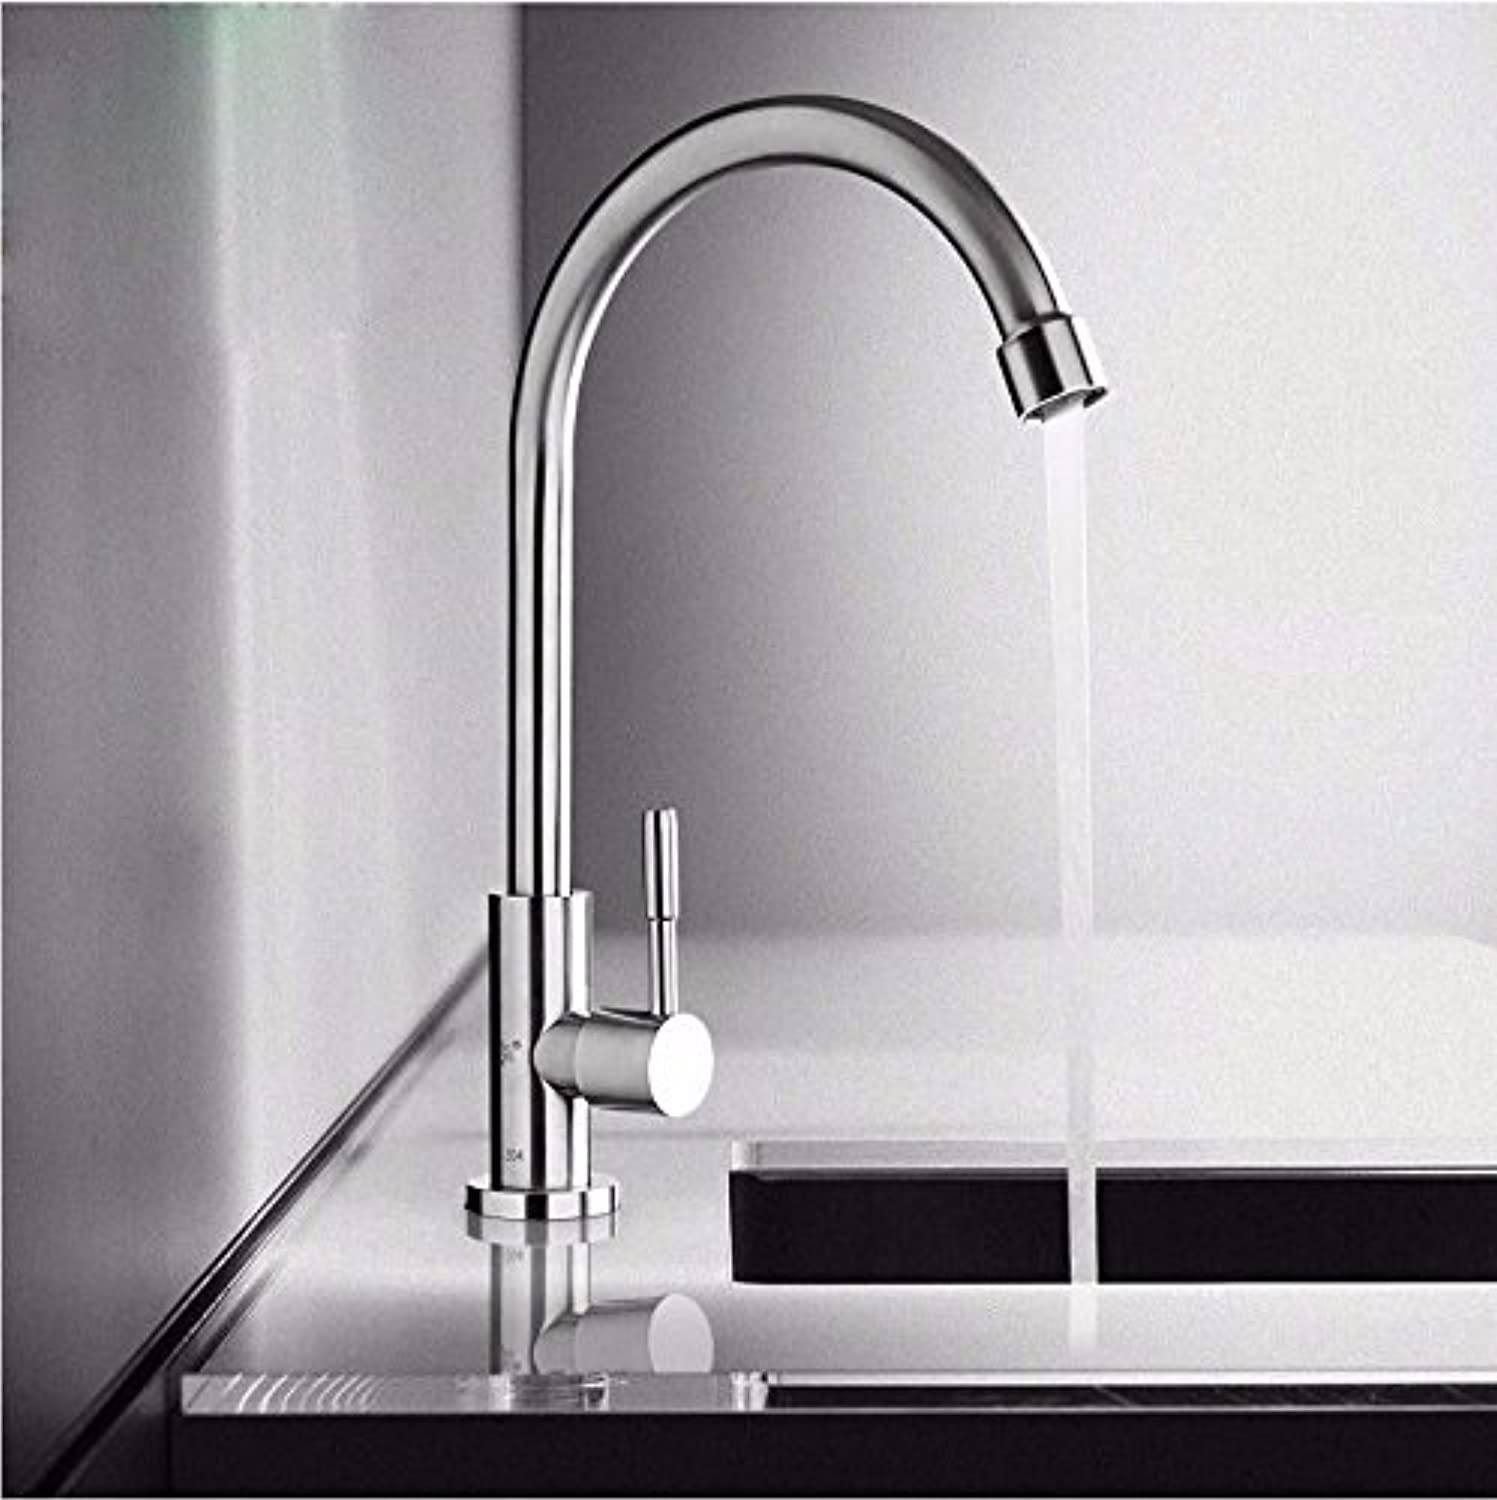 Commercial Single Lever Pull Down Kitchen Sink Faucet Brass Constructed Polished Kitchen Sink Stainless Steel Brushed Single Cold Faucet, redating Lead-Free Rust-Free Anti-Drip Faucet